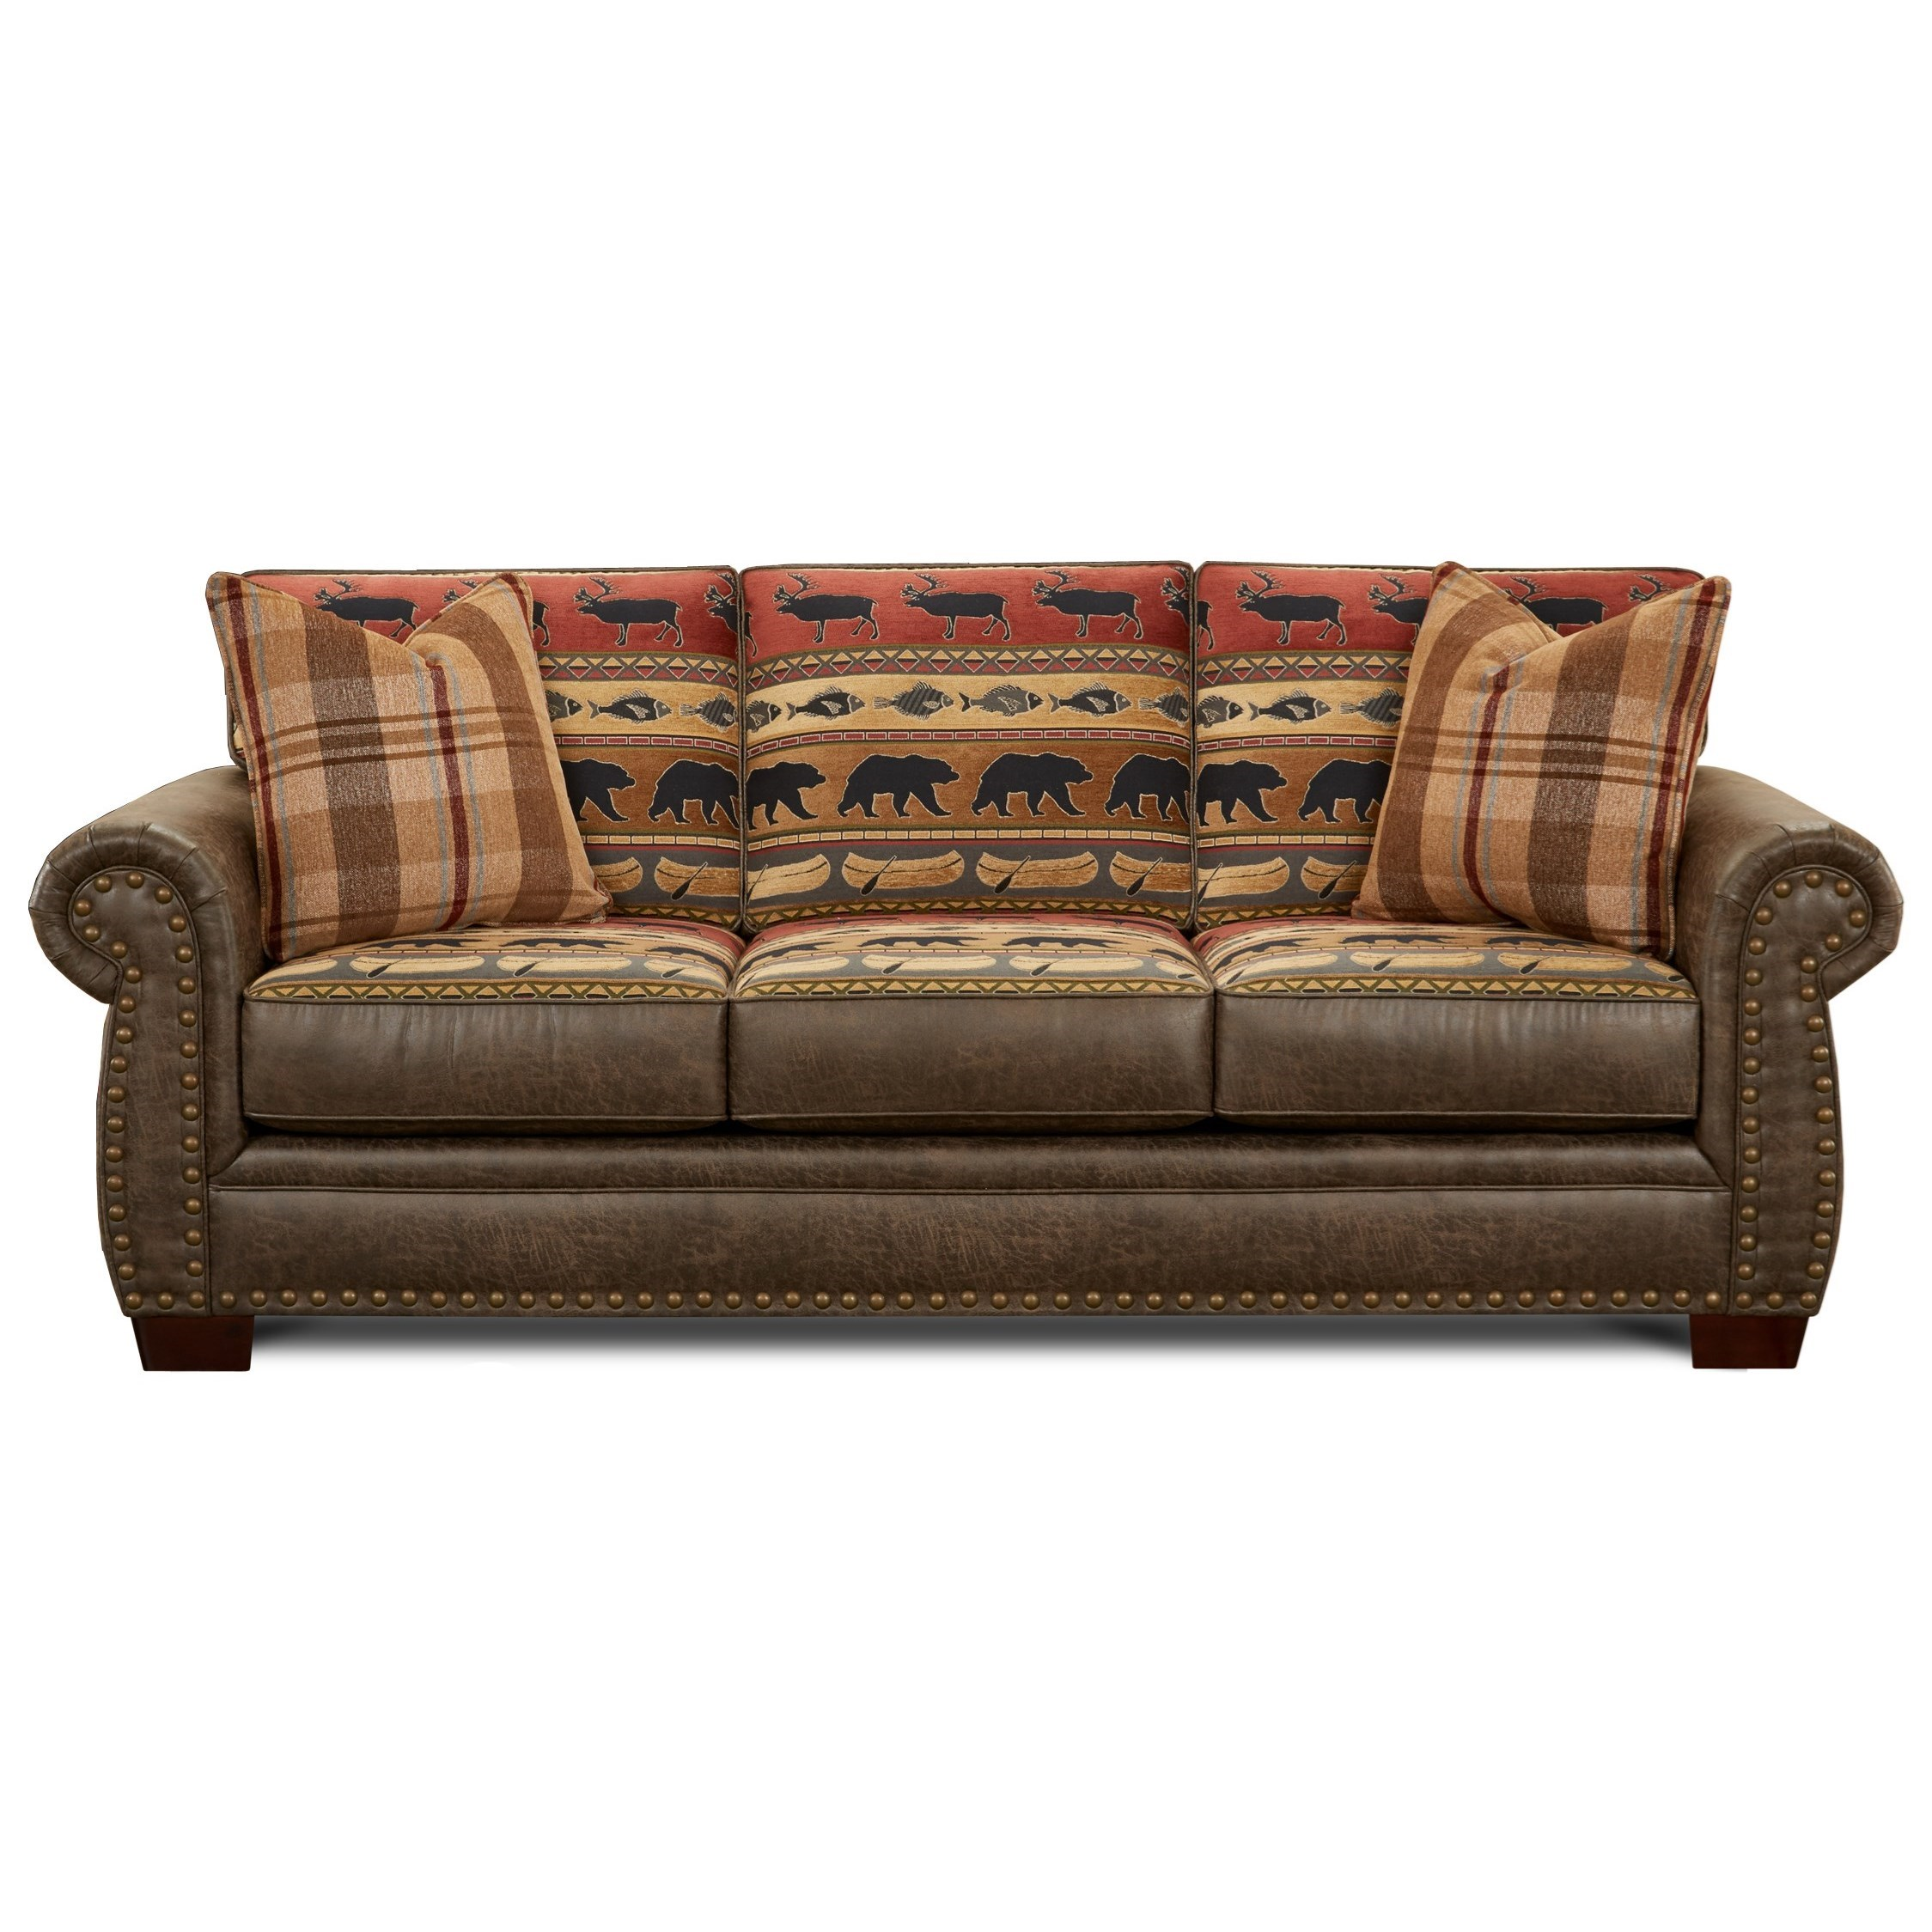 22-00 Sofa by FN at Lindy's Furniture Company